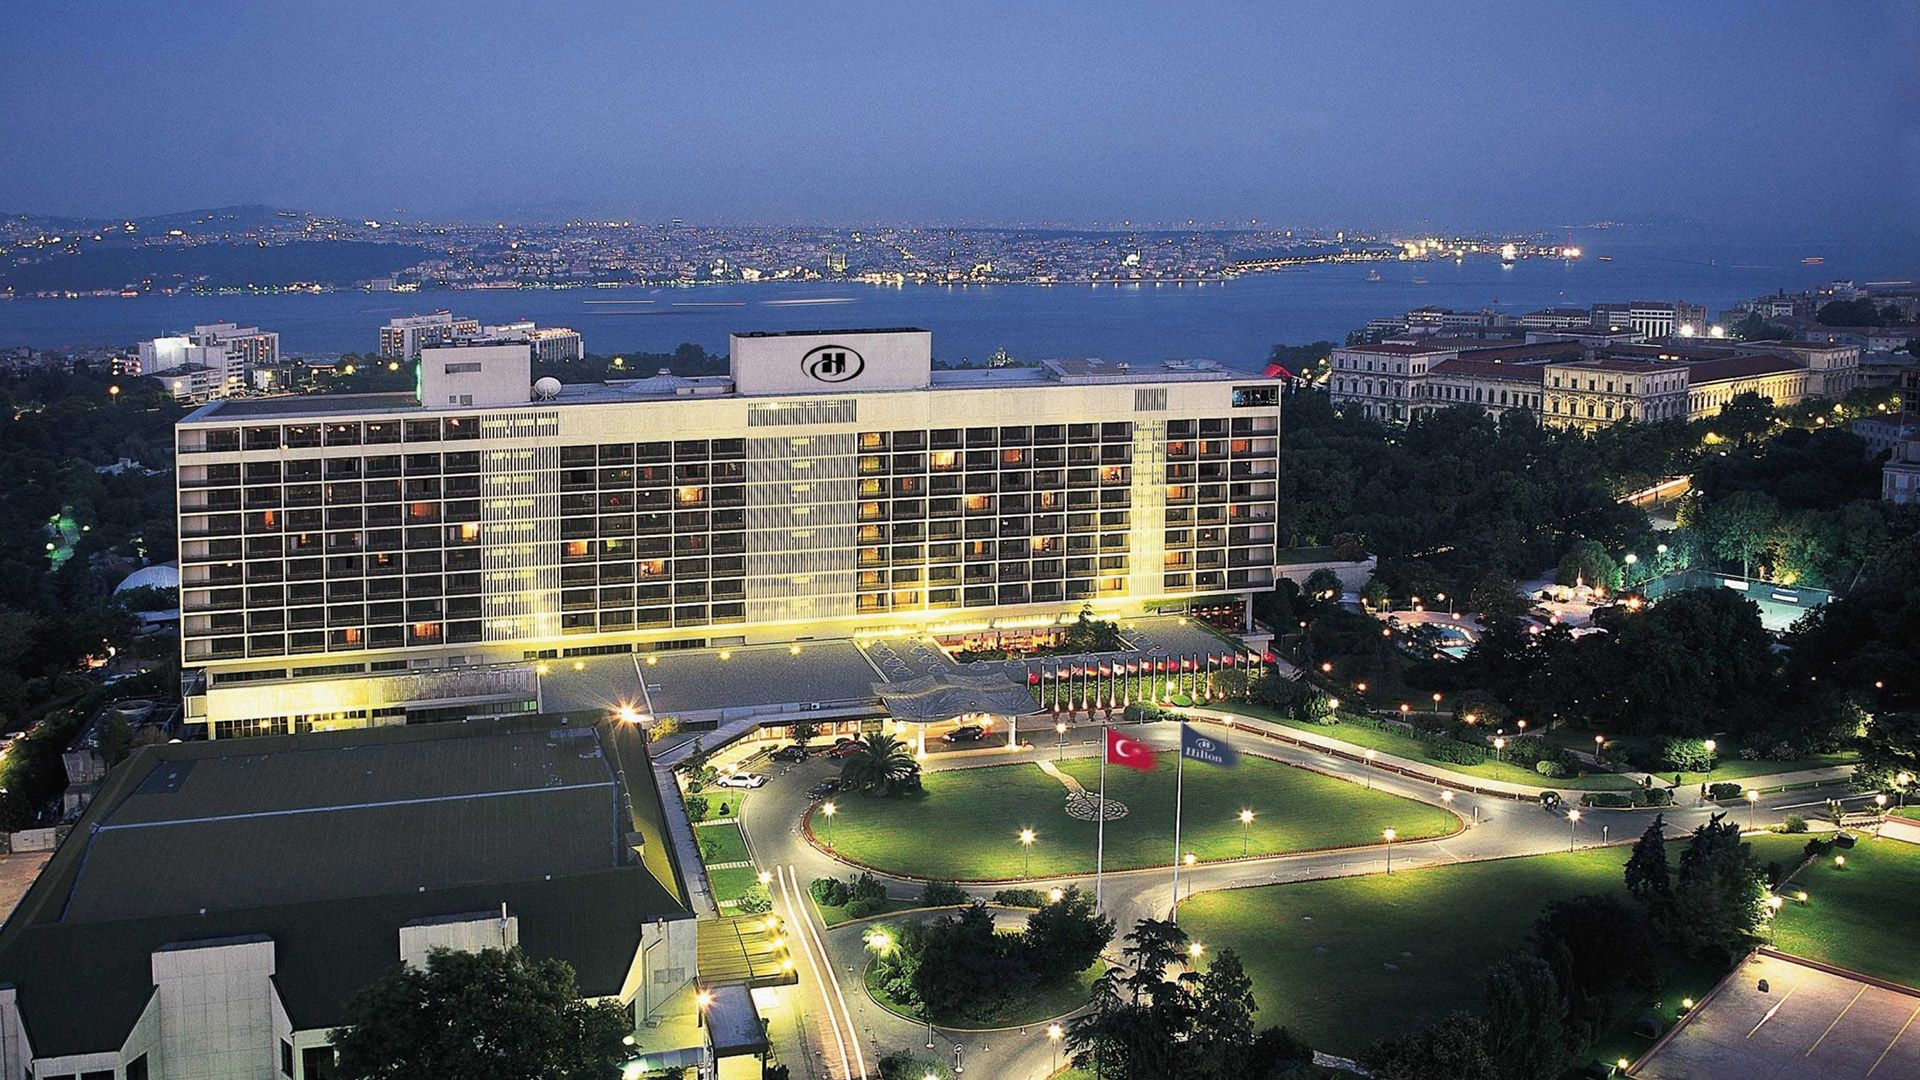 Hilton Istanbul Is An Istanbul Landmark In The Heart Of The City In Beautiful Gardens Overlooking The Bosphorus Hilton Istanbul Istanbul Hotels Istanbul Hotel